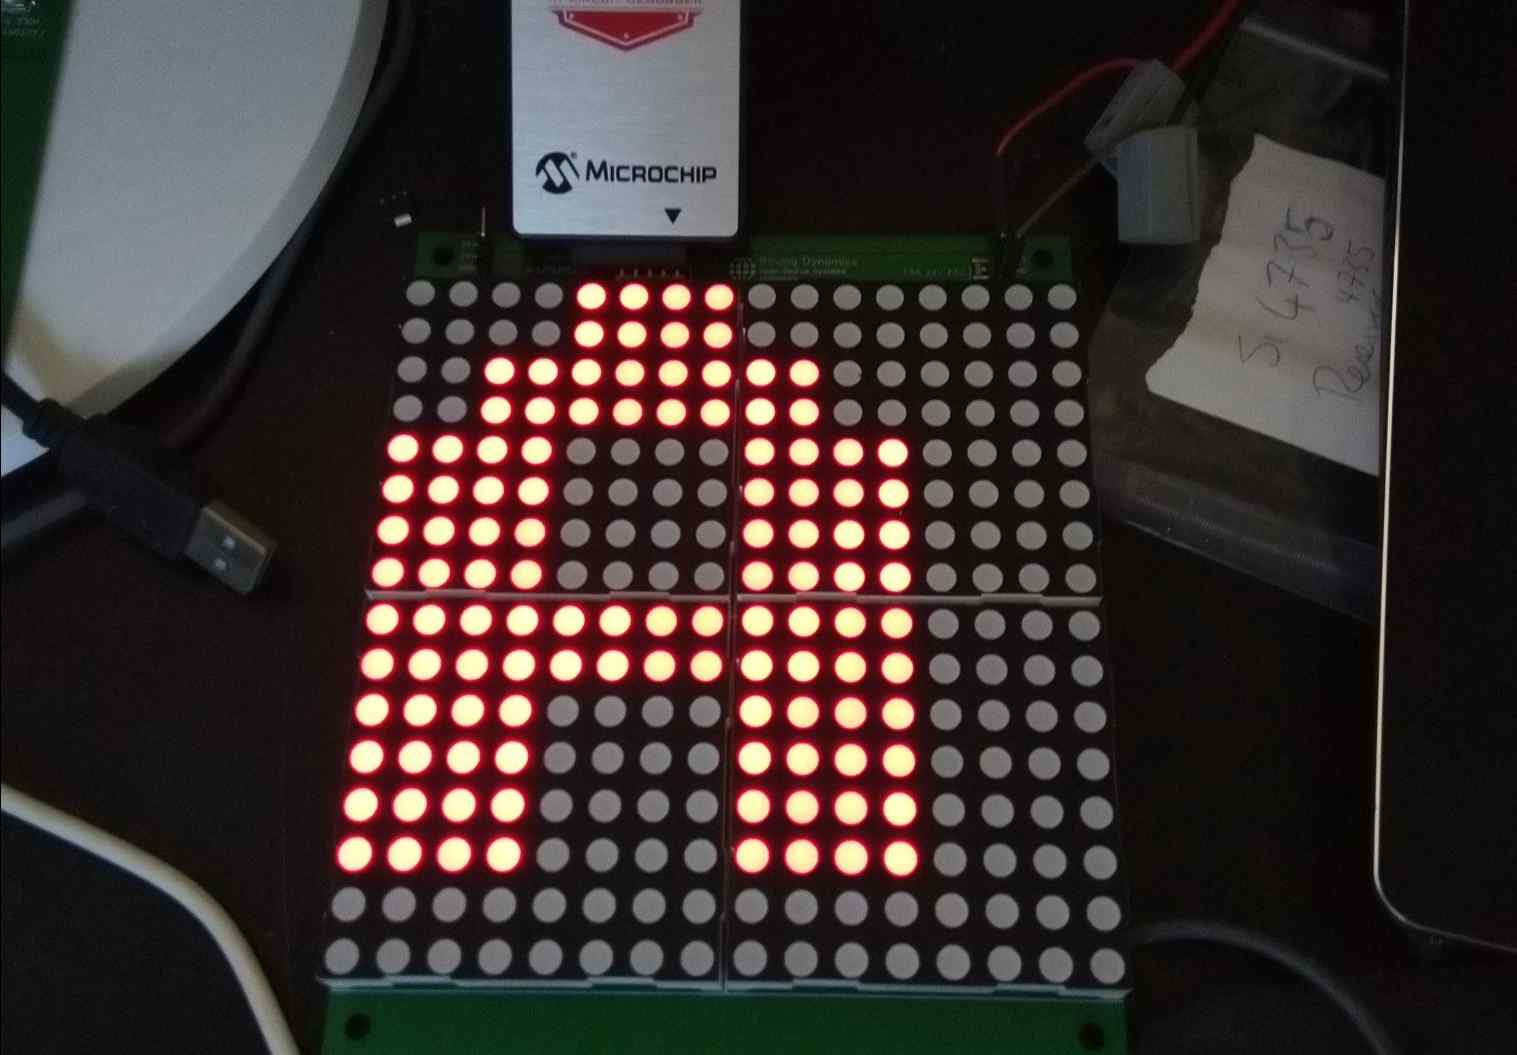 Chainable Large LED character display